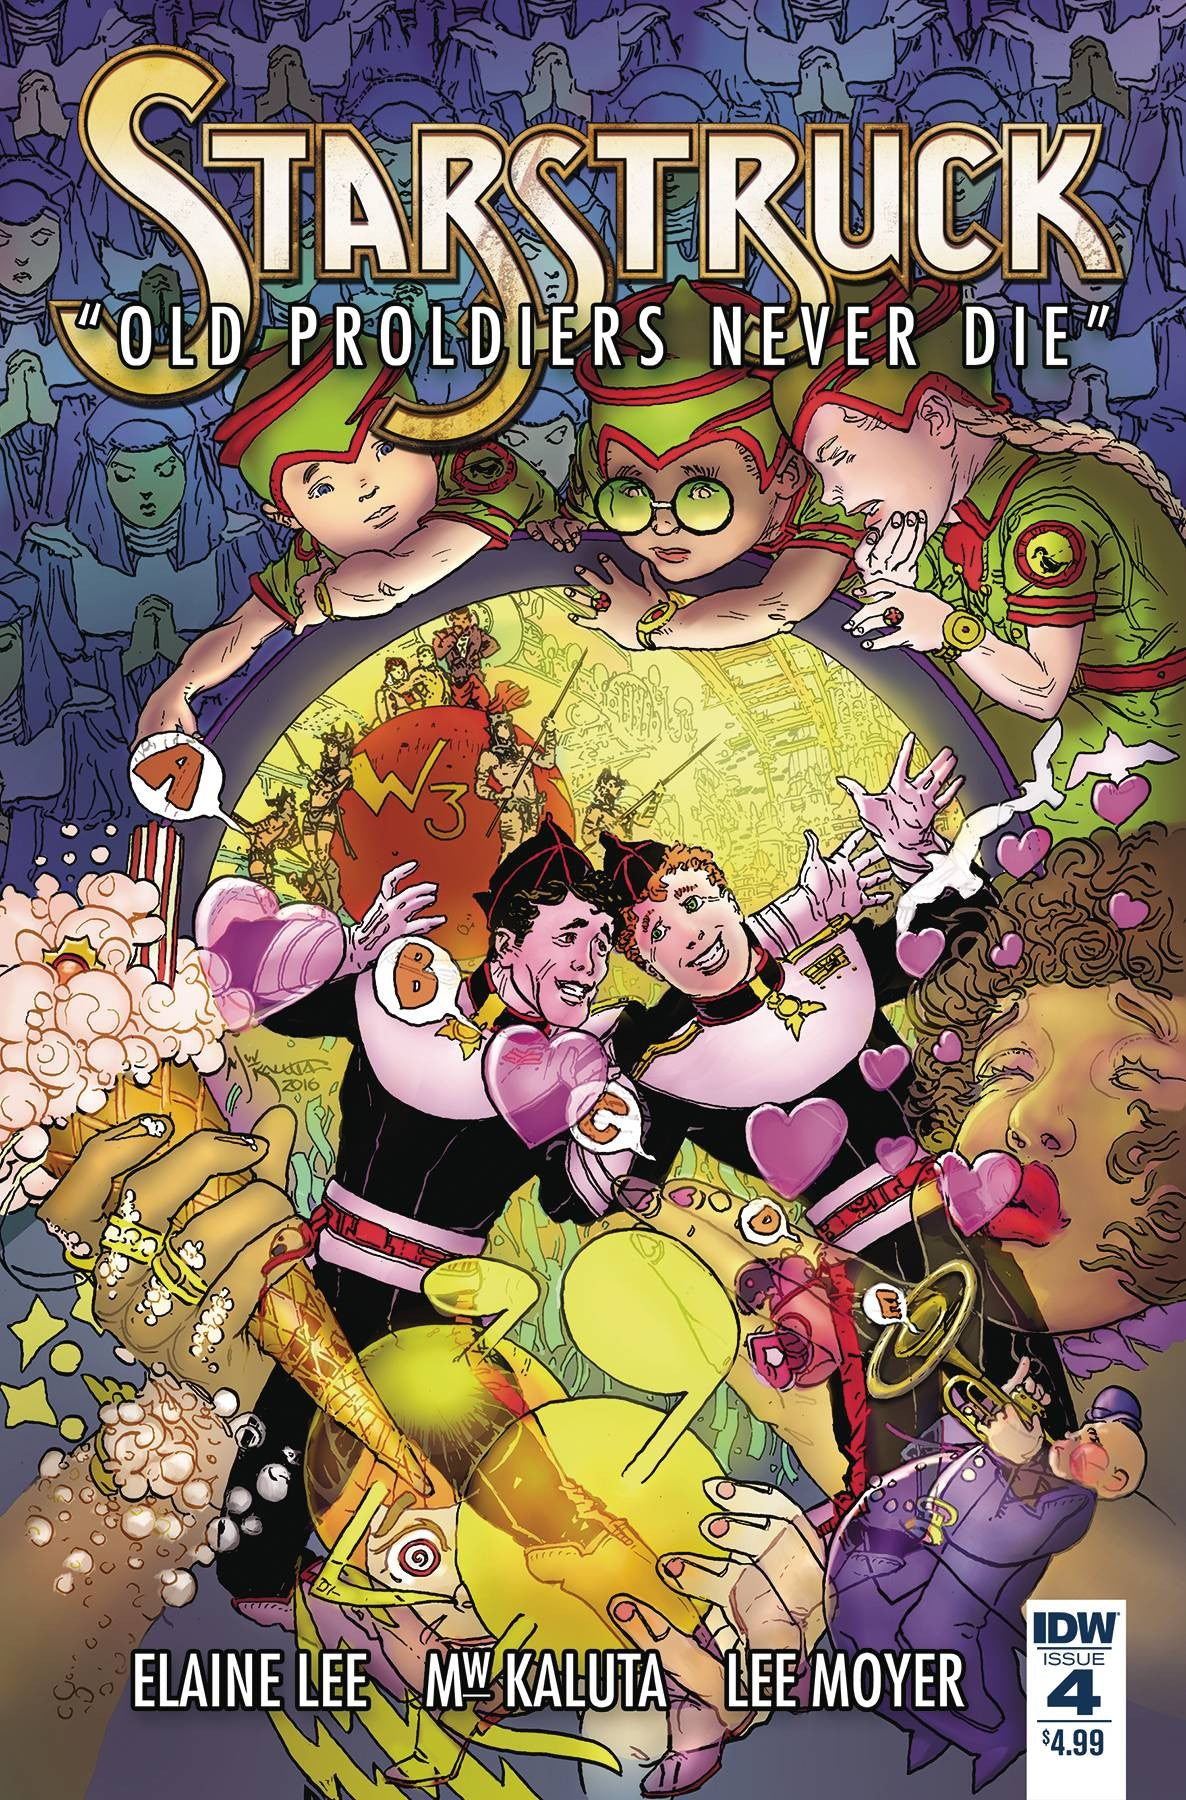 STARSTRUCK OLD PROLDIERS NEVER DIE #4